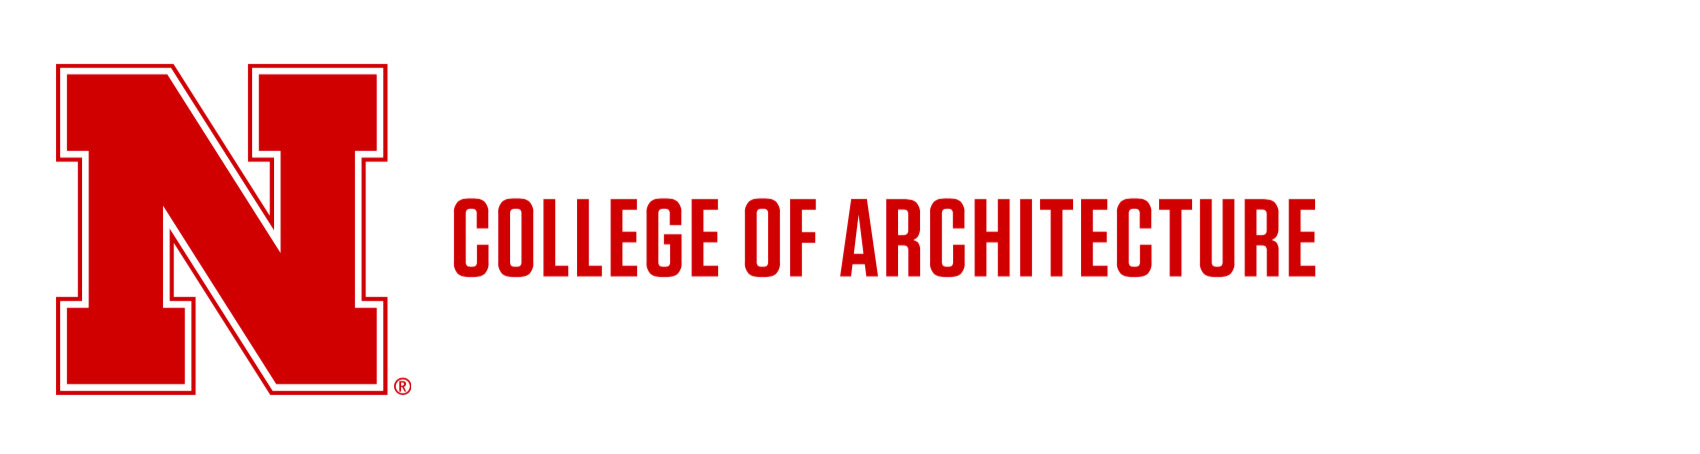 Horizontal lockup - College of Architecture